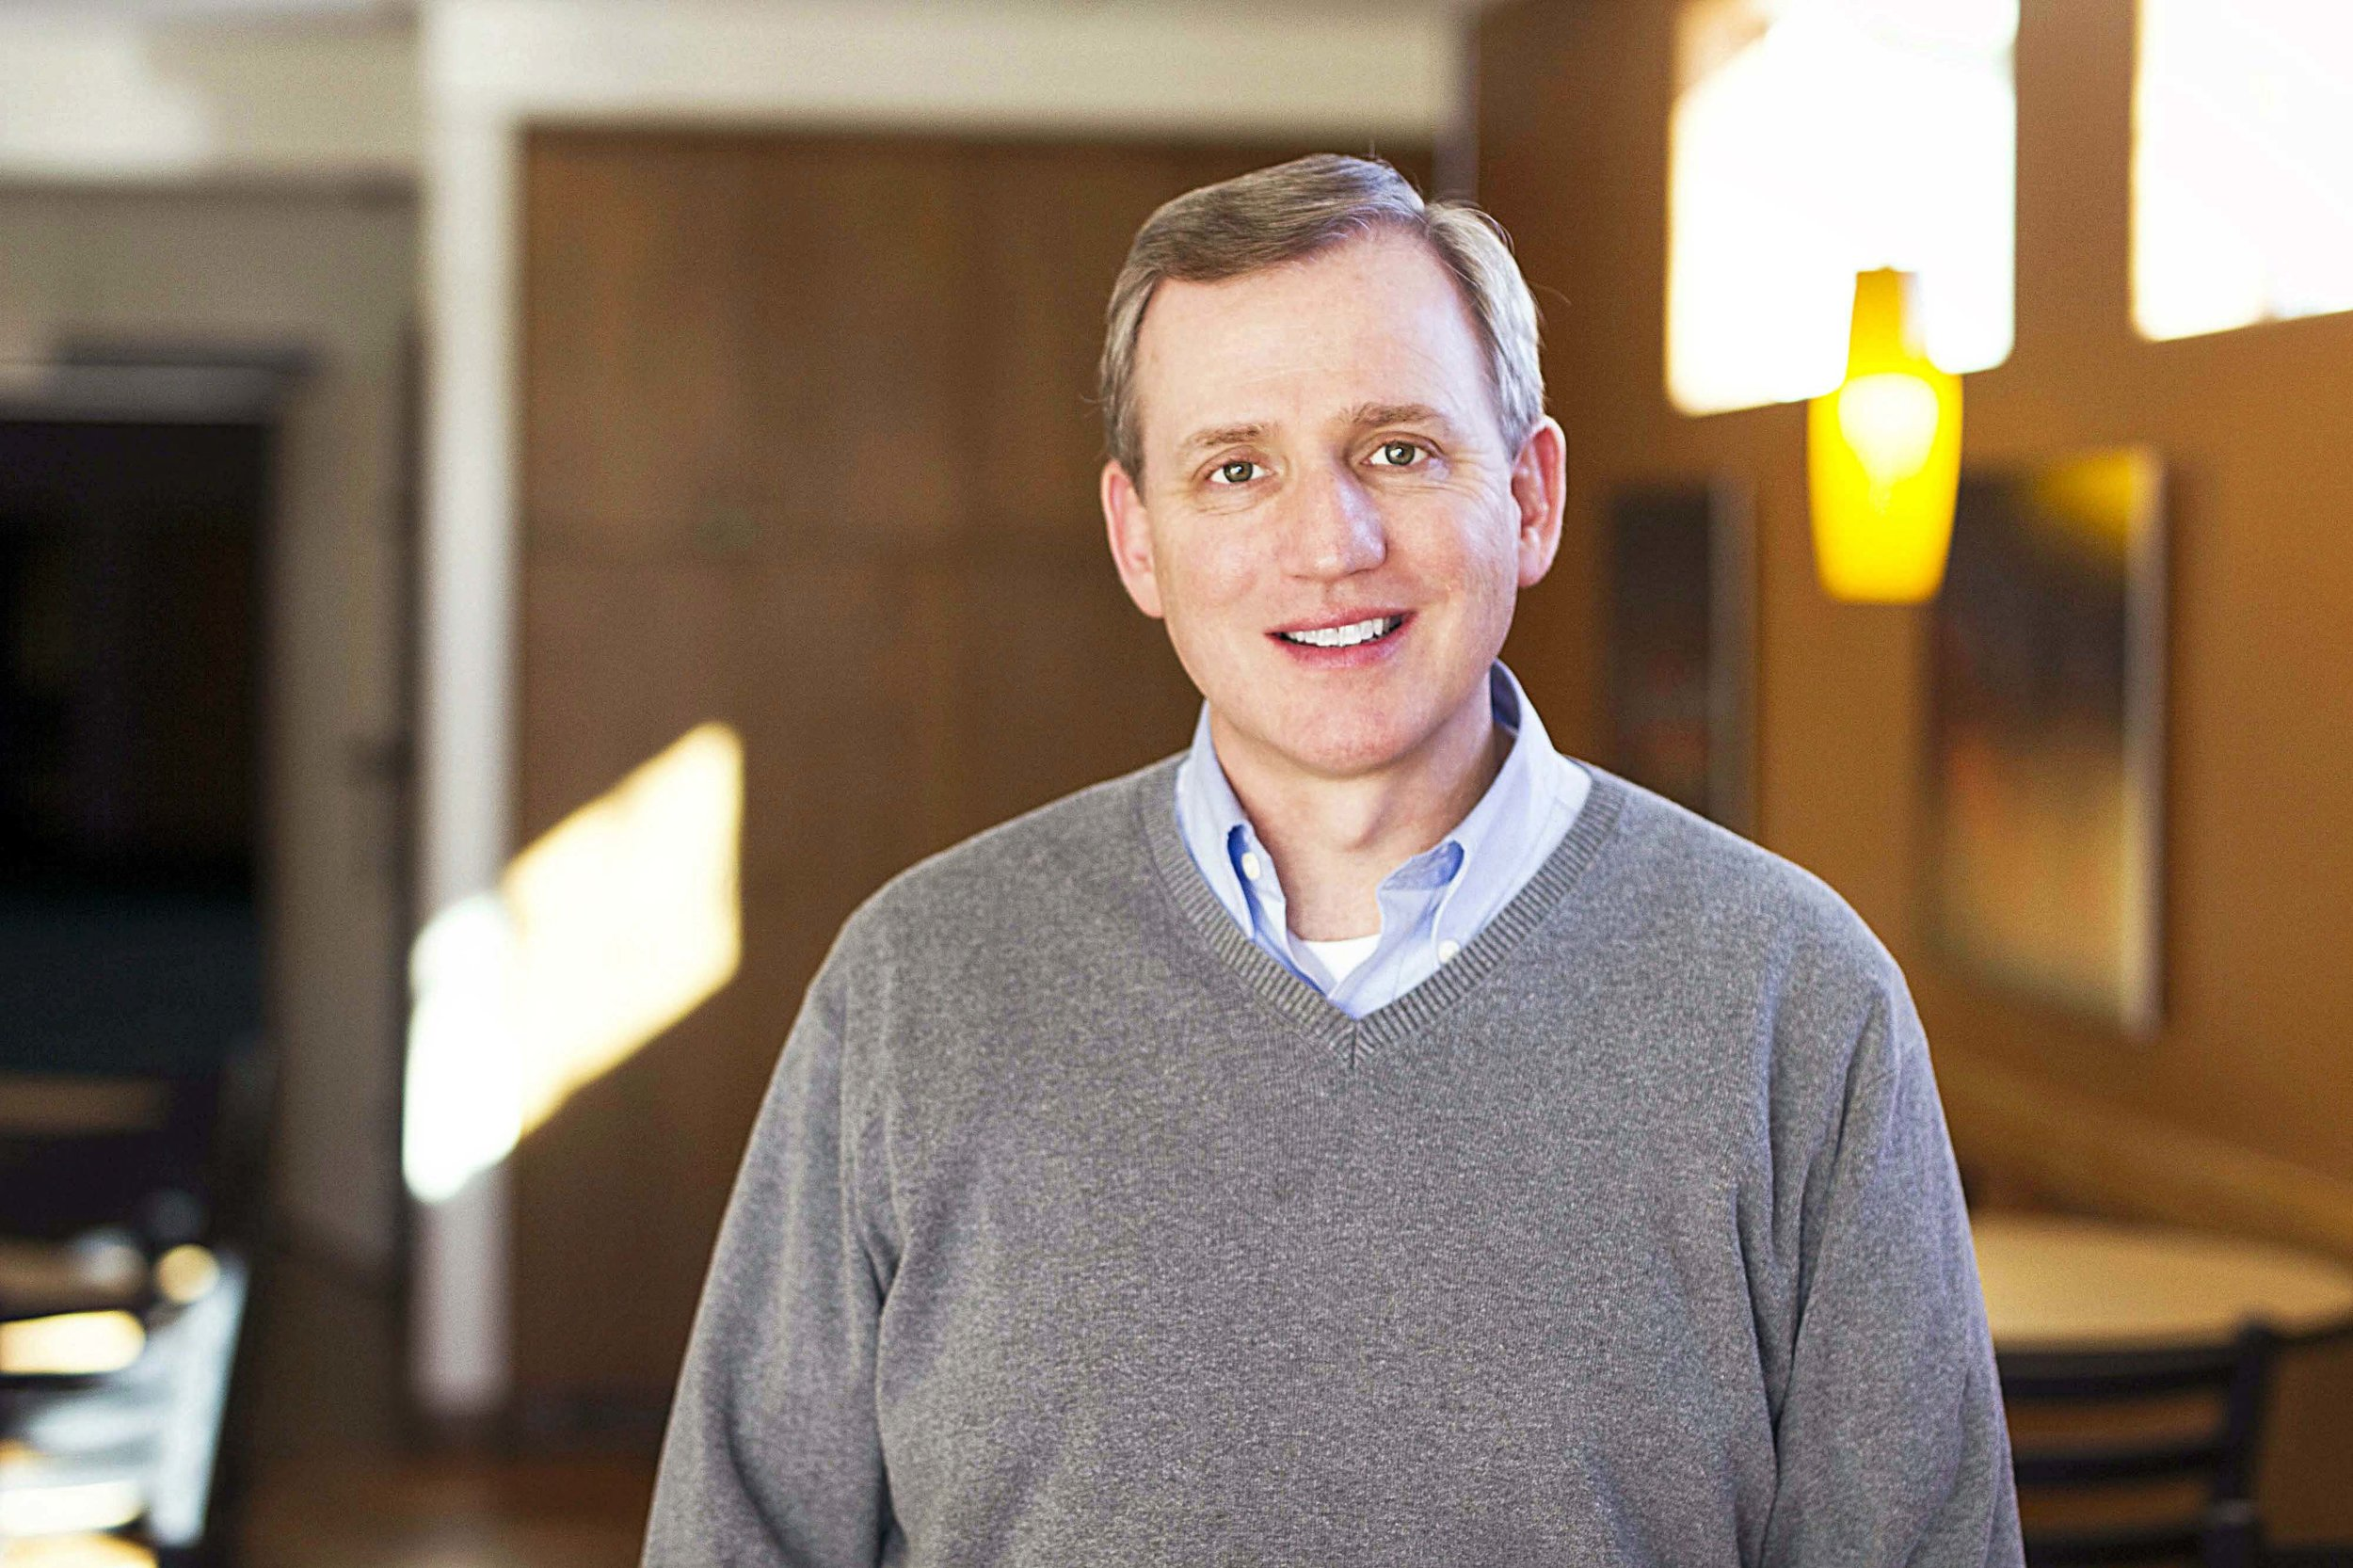 Eric Frey - I am the lead pastor here at MLPC. I love and am loved by my wife Lynn, and daughters Lauren and Erin. I am a joy-filled grace addict, growing more child-like while leading other sideways people – like myself – to know and love Jesus.Contact Eric: ericfrey@aol.com